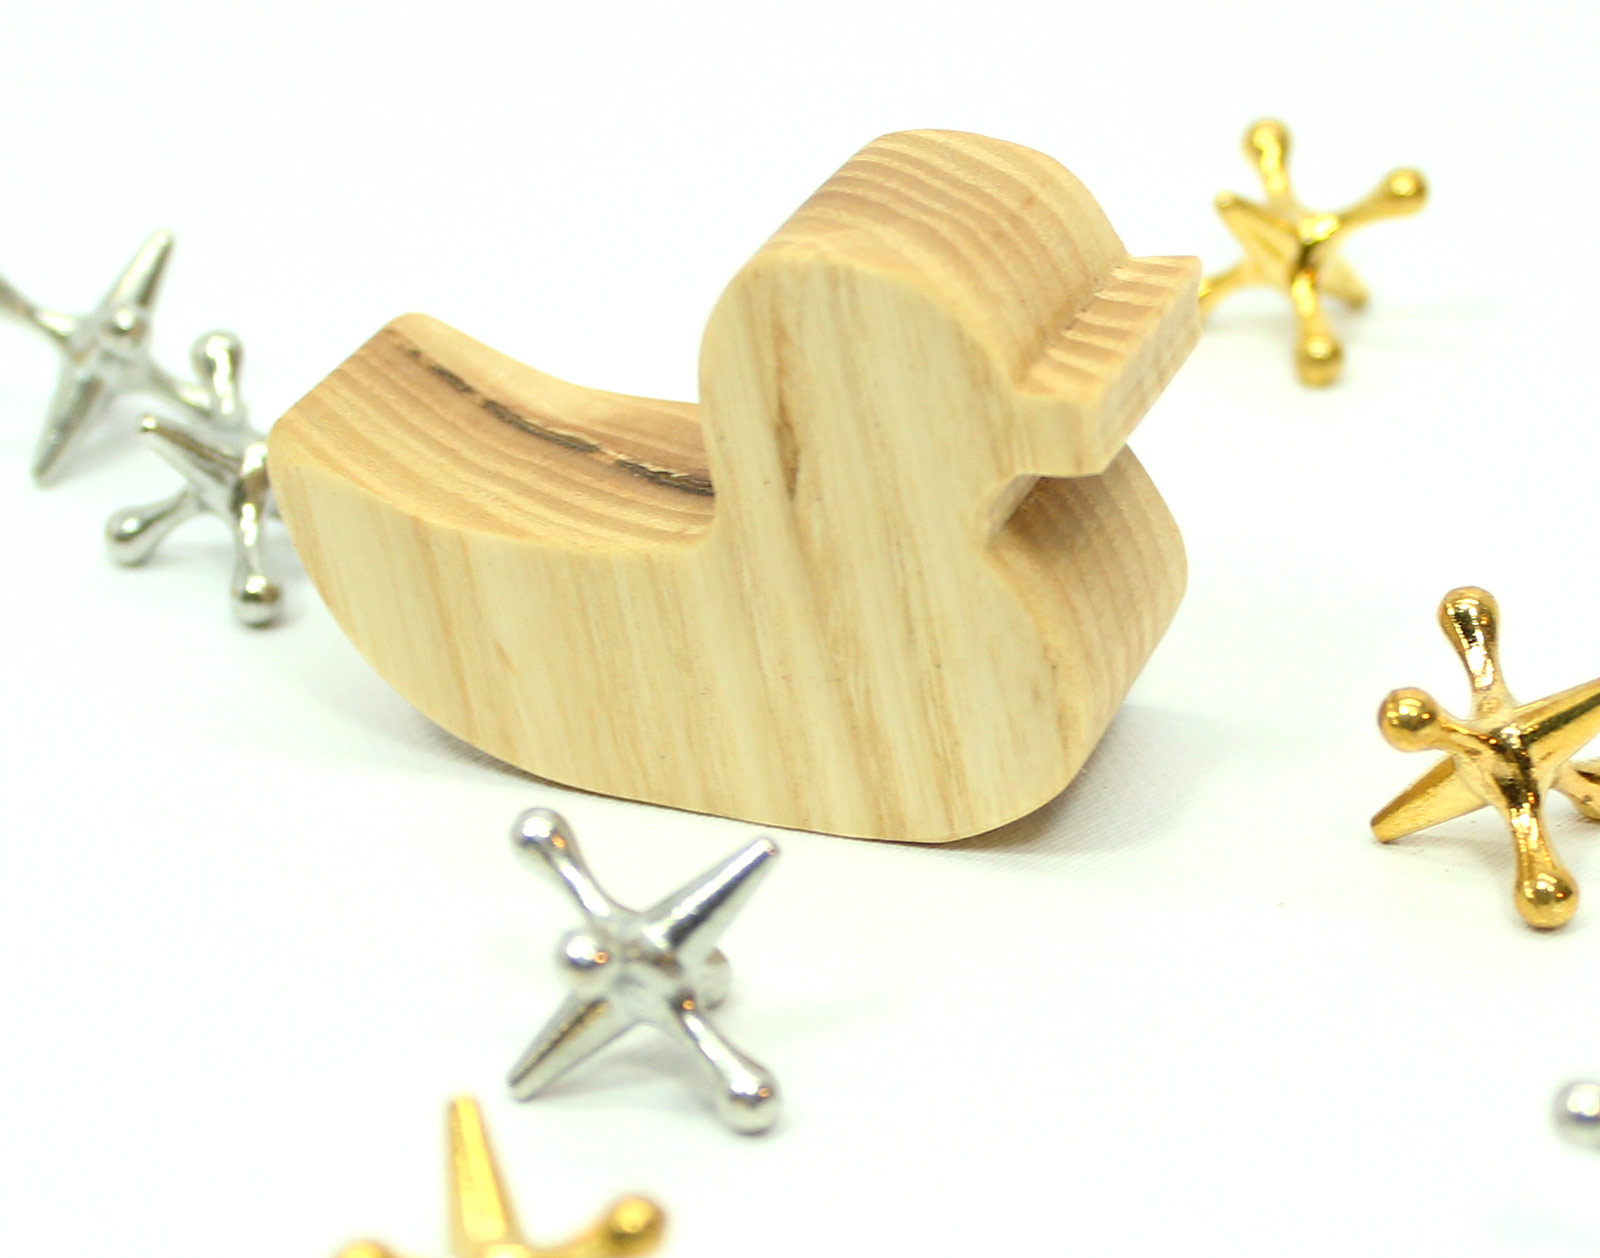 Wooden Rubber Duck Toy